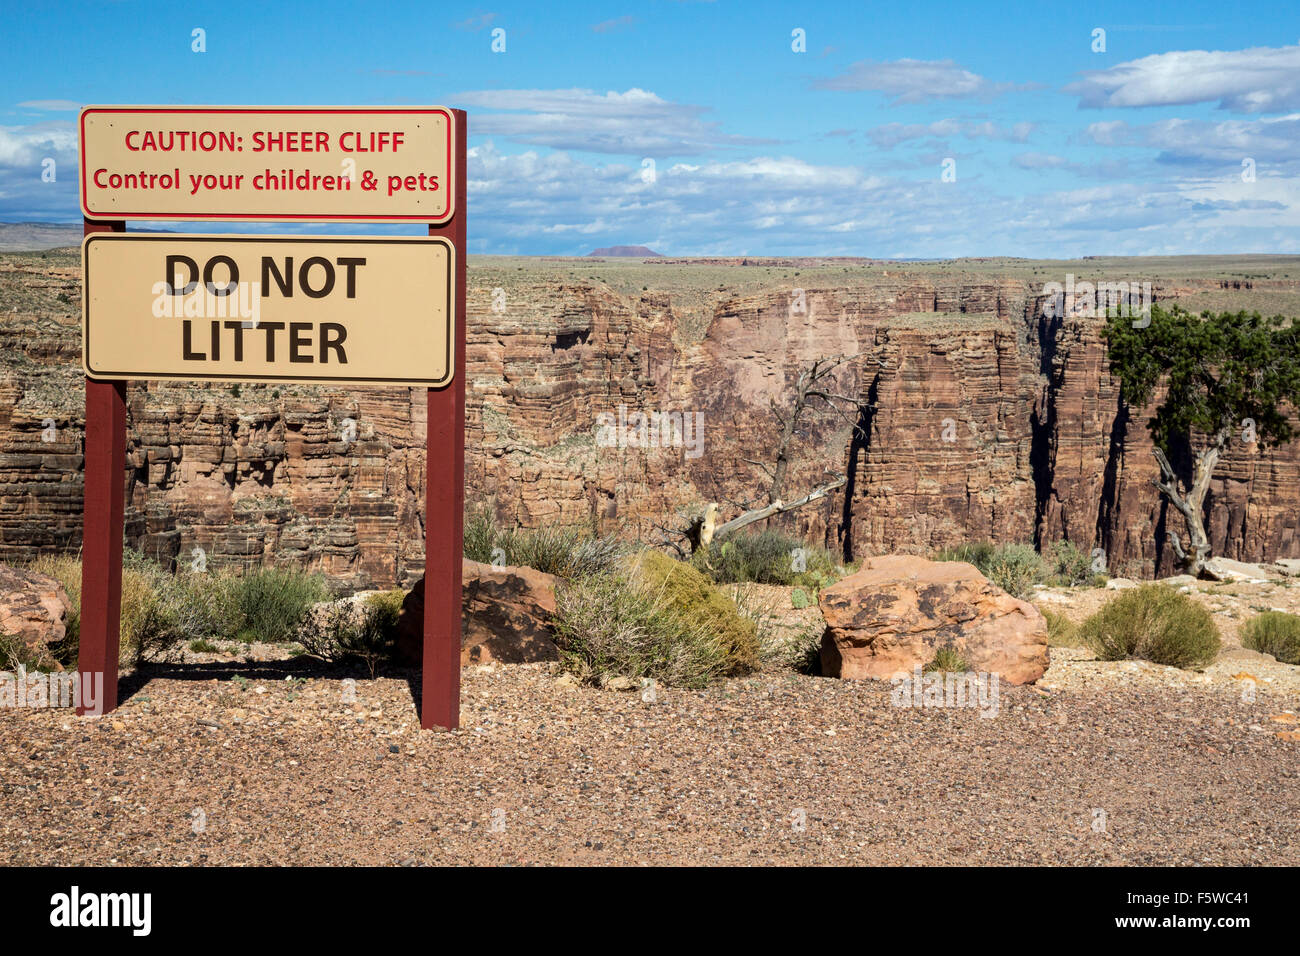 Cameron, Arizona - A sign prohibits littering and warns visitors to keep their children from falling off a cliff. - Stock Image